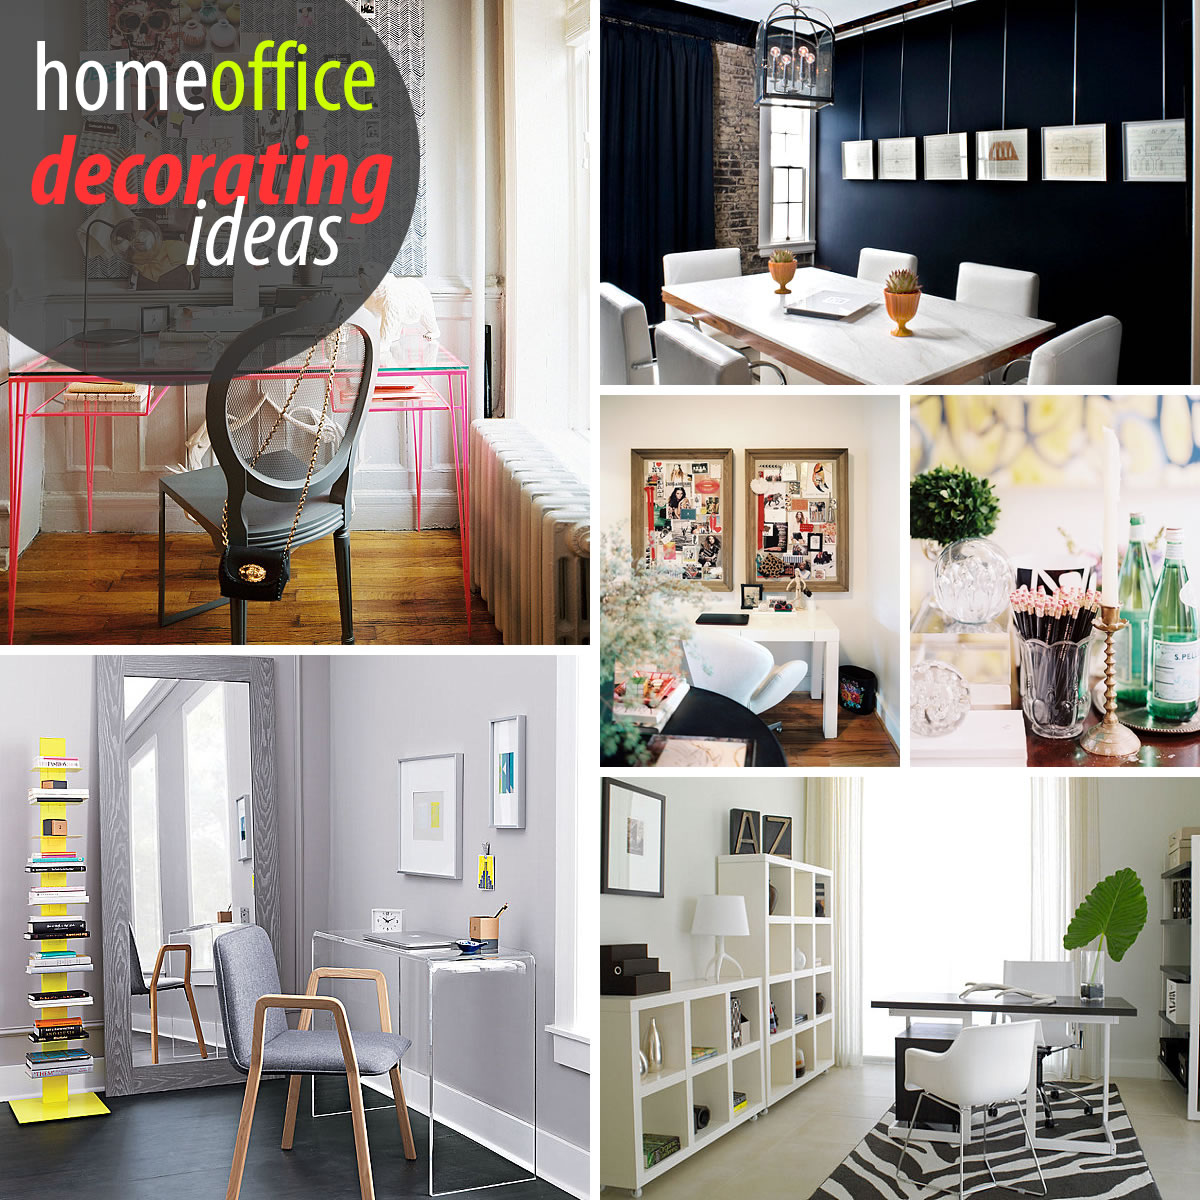 Creative home office decorating ideas for Office design ideas for home